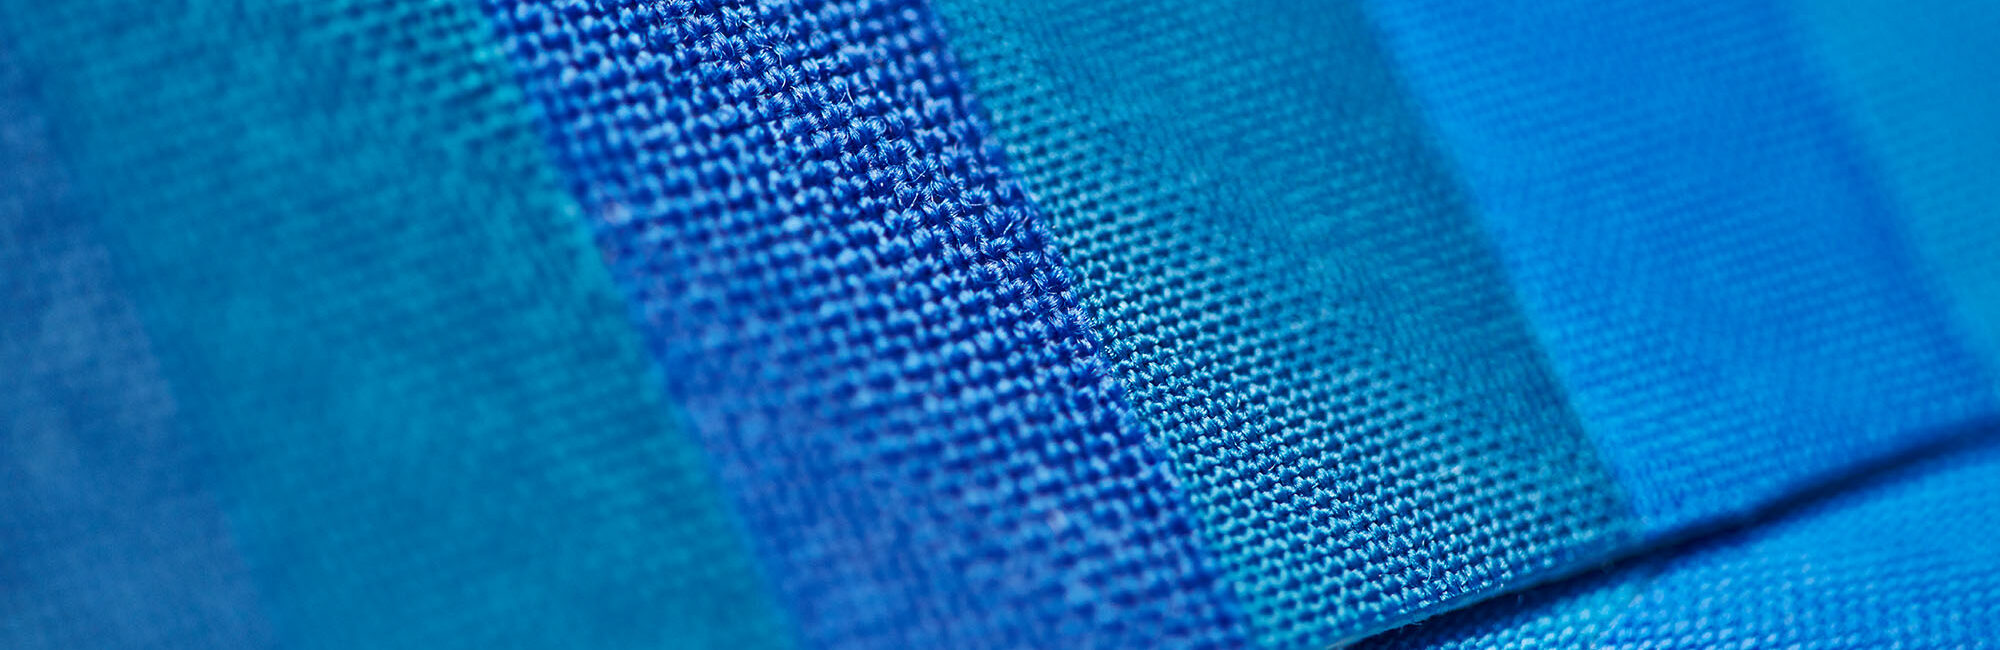 blue wool standards close up